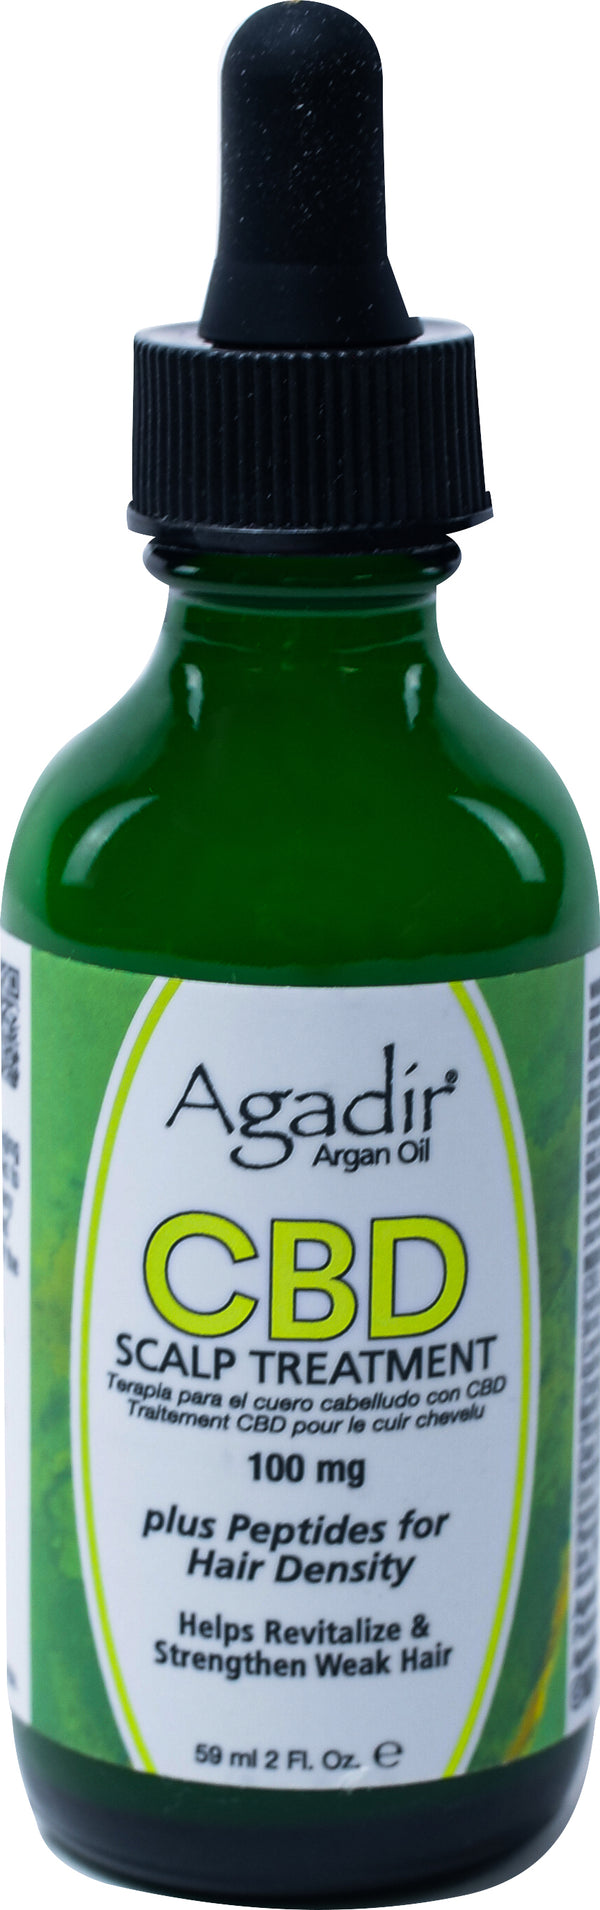 Agadir CBD Scalp Treatment 2 Oz.